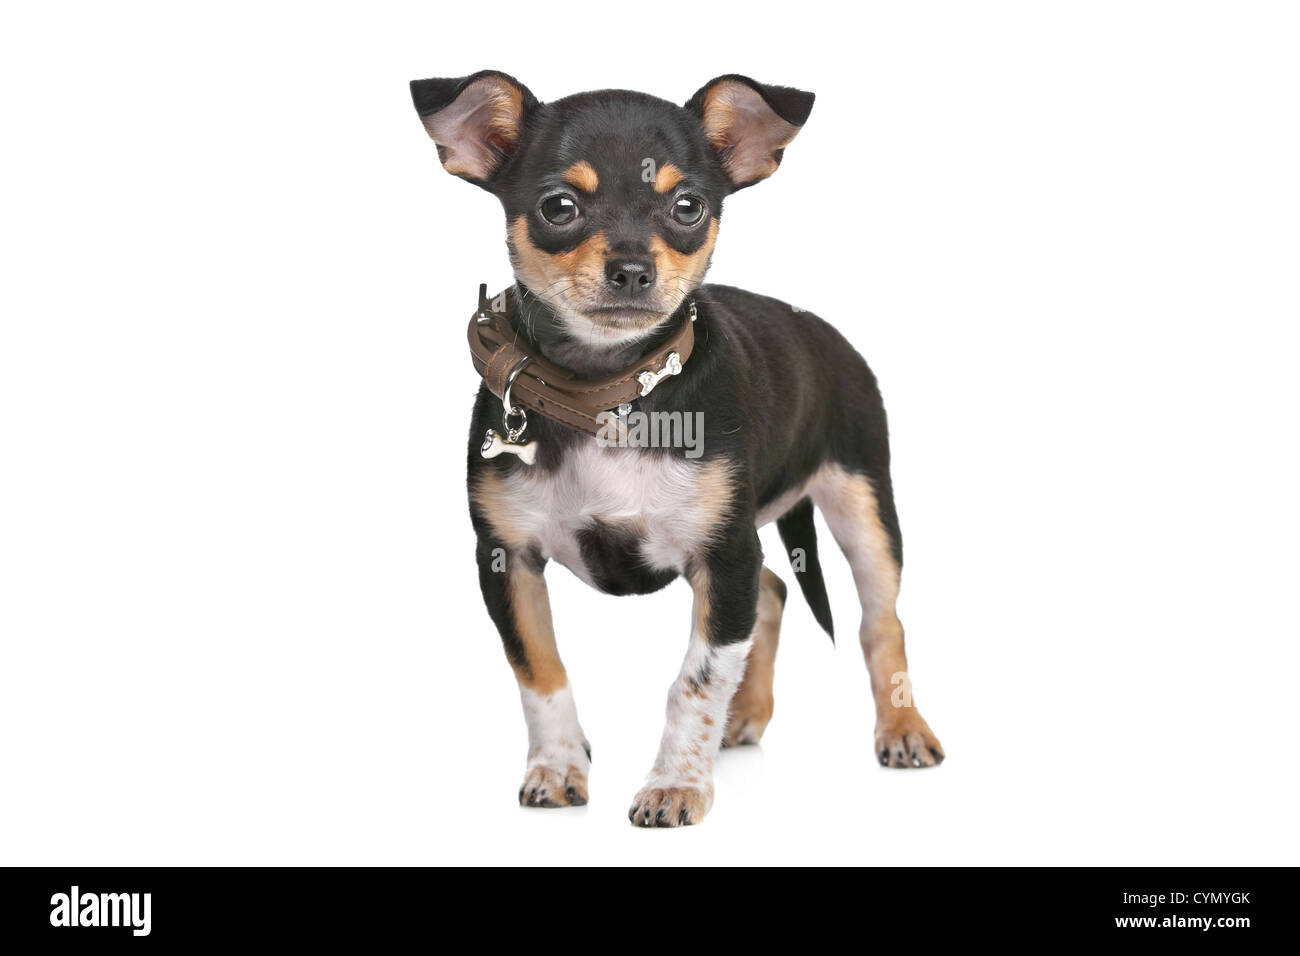 Chihuahuas pictures of black adult